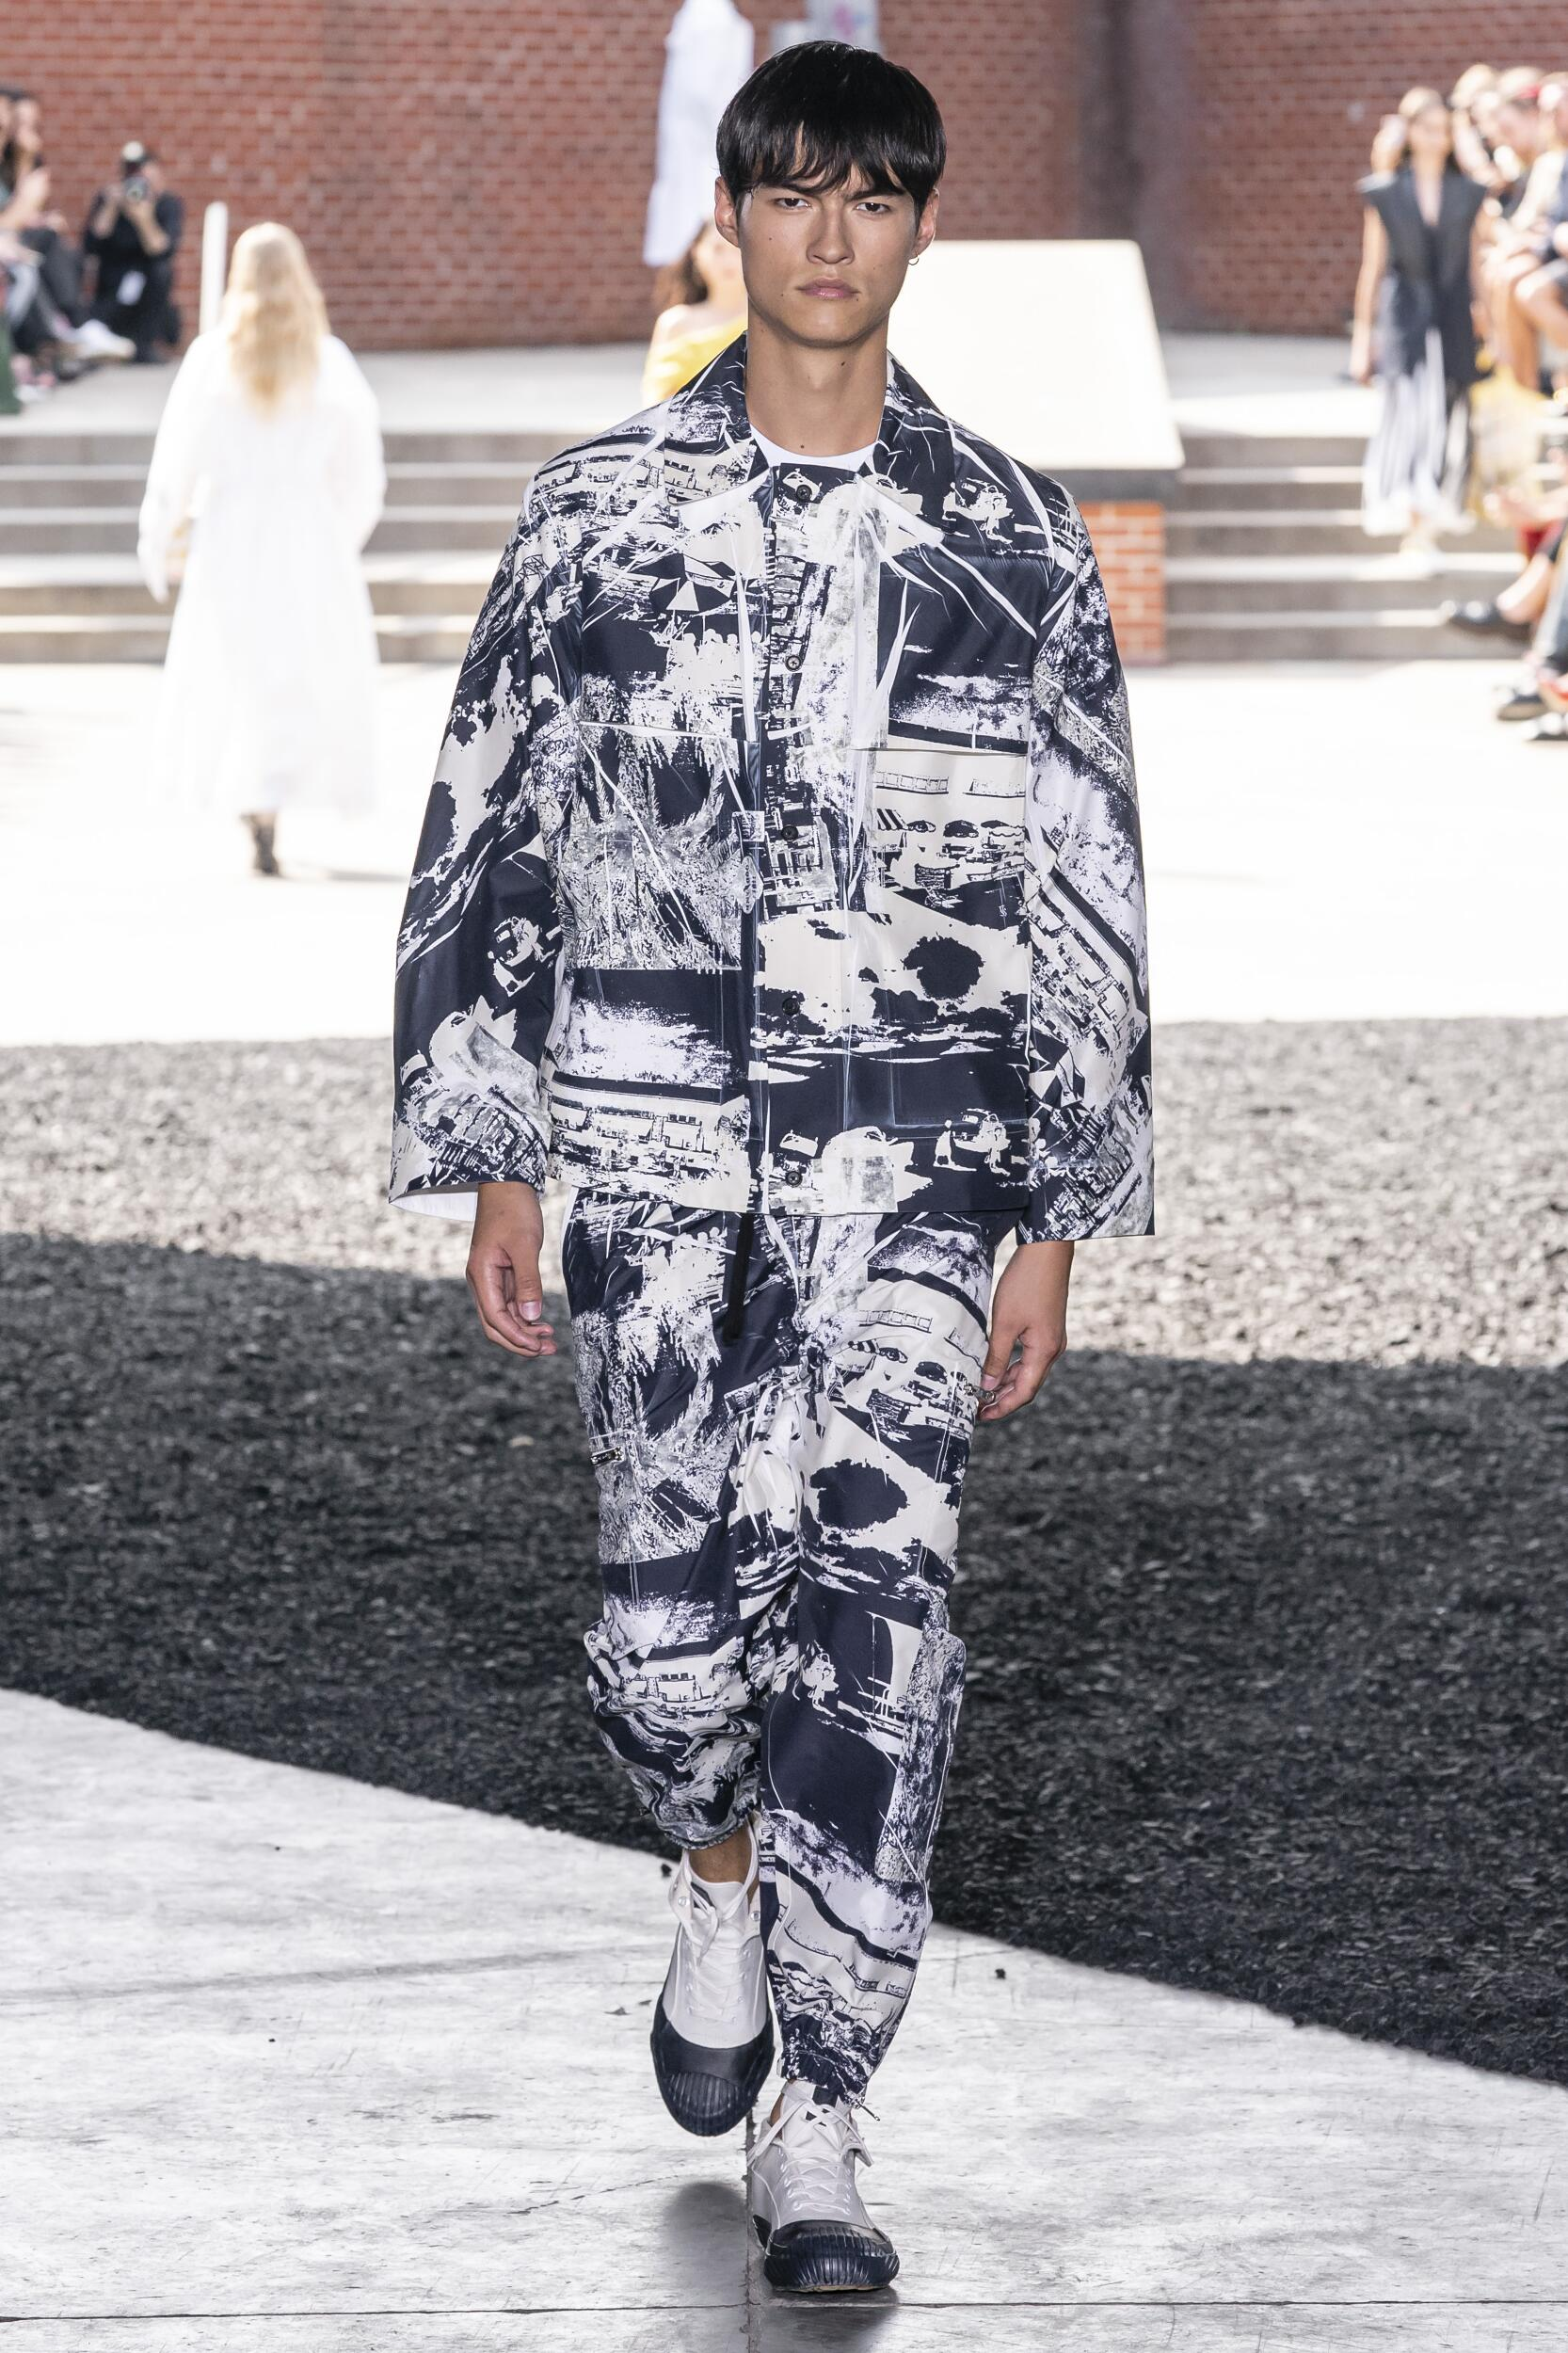 Summer Men 2020 Fashion Trends 3.1 Phillip Lim